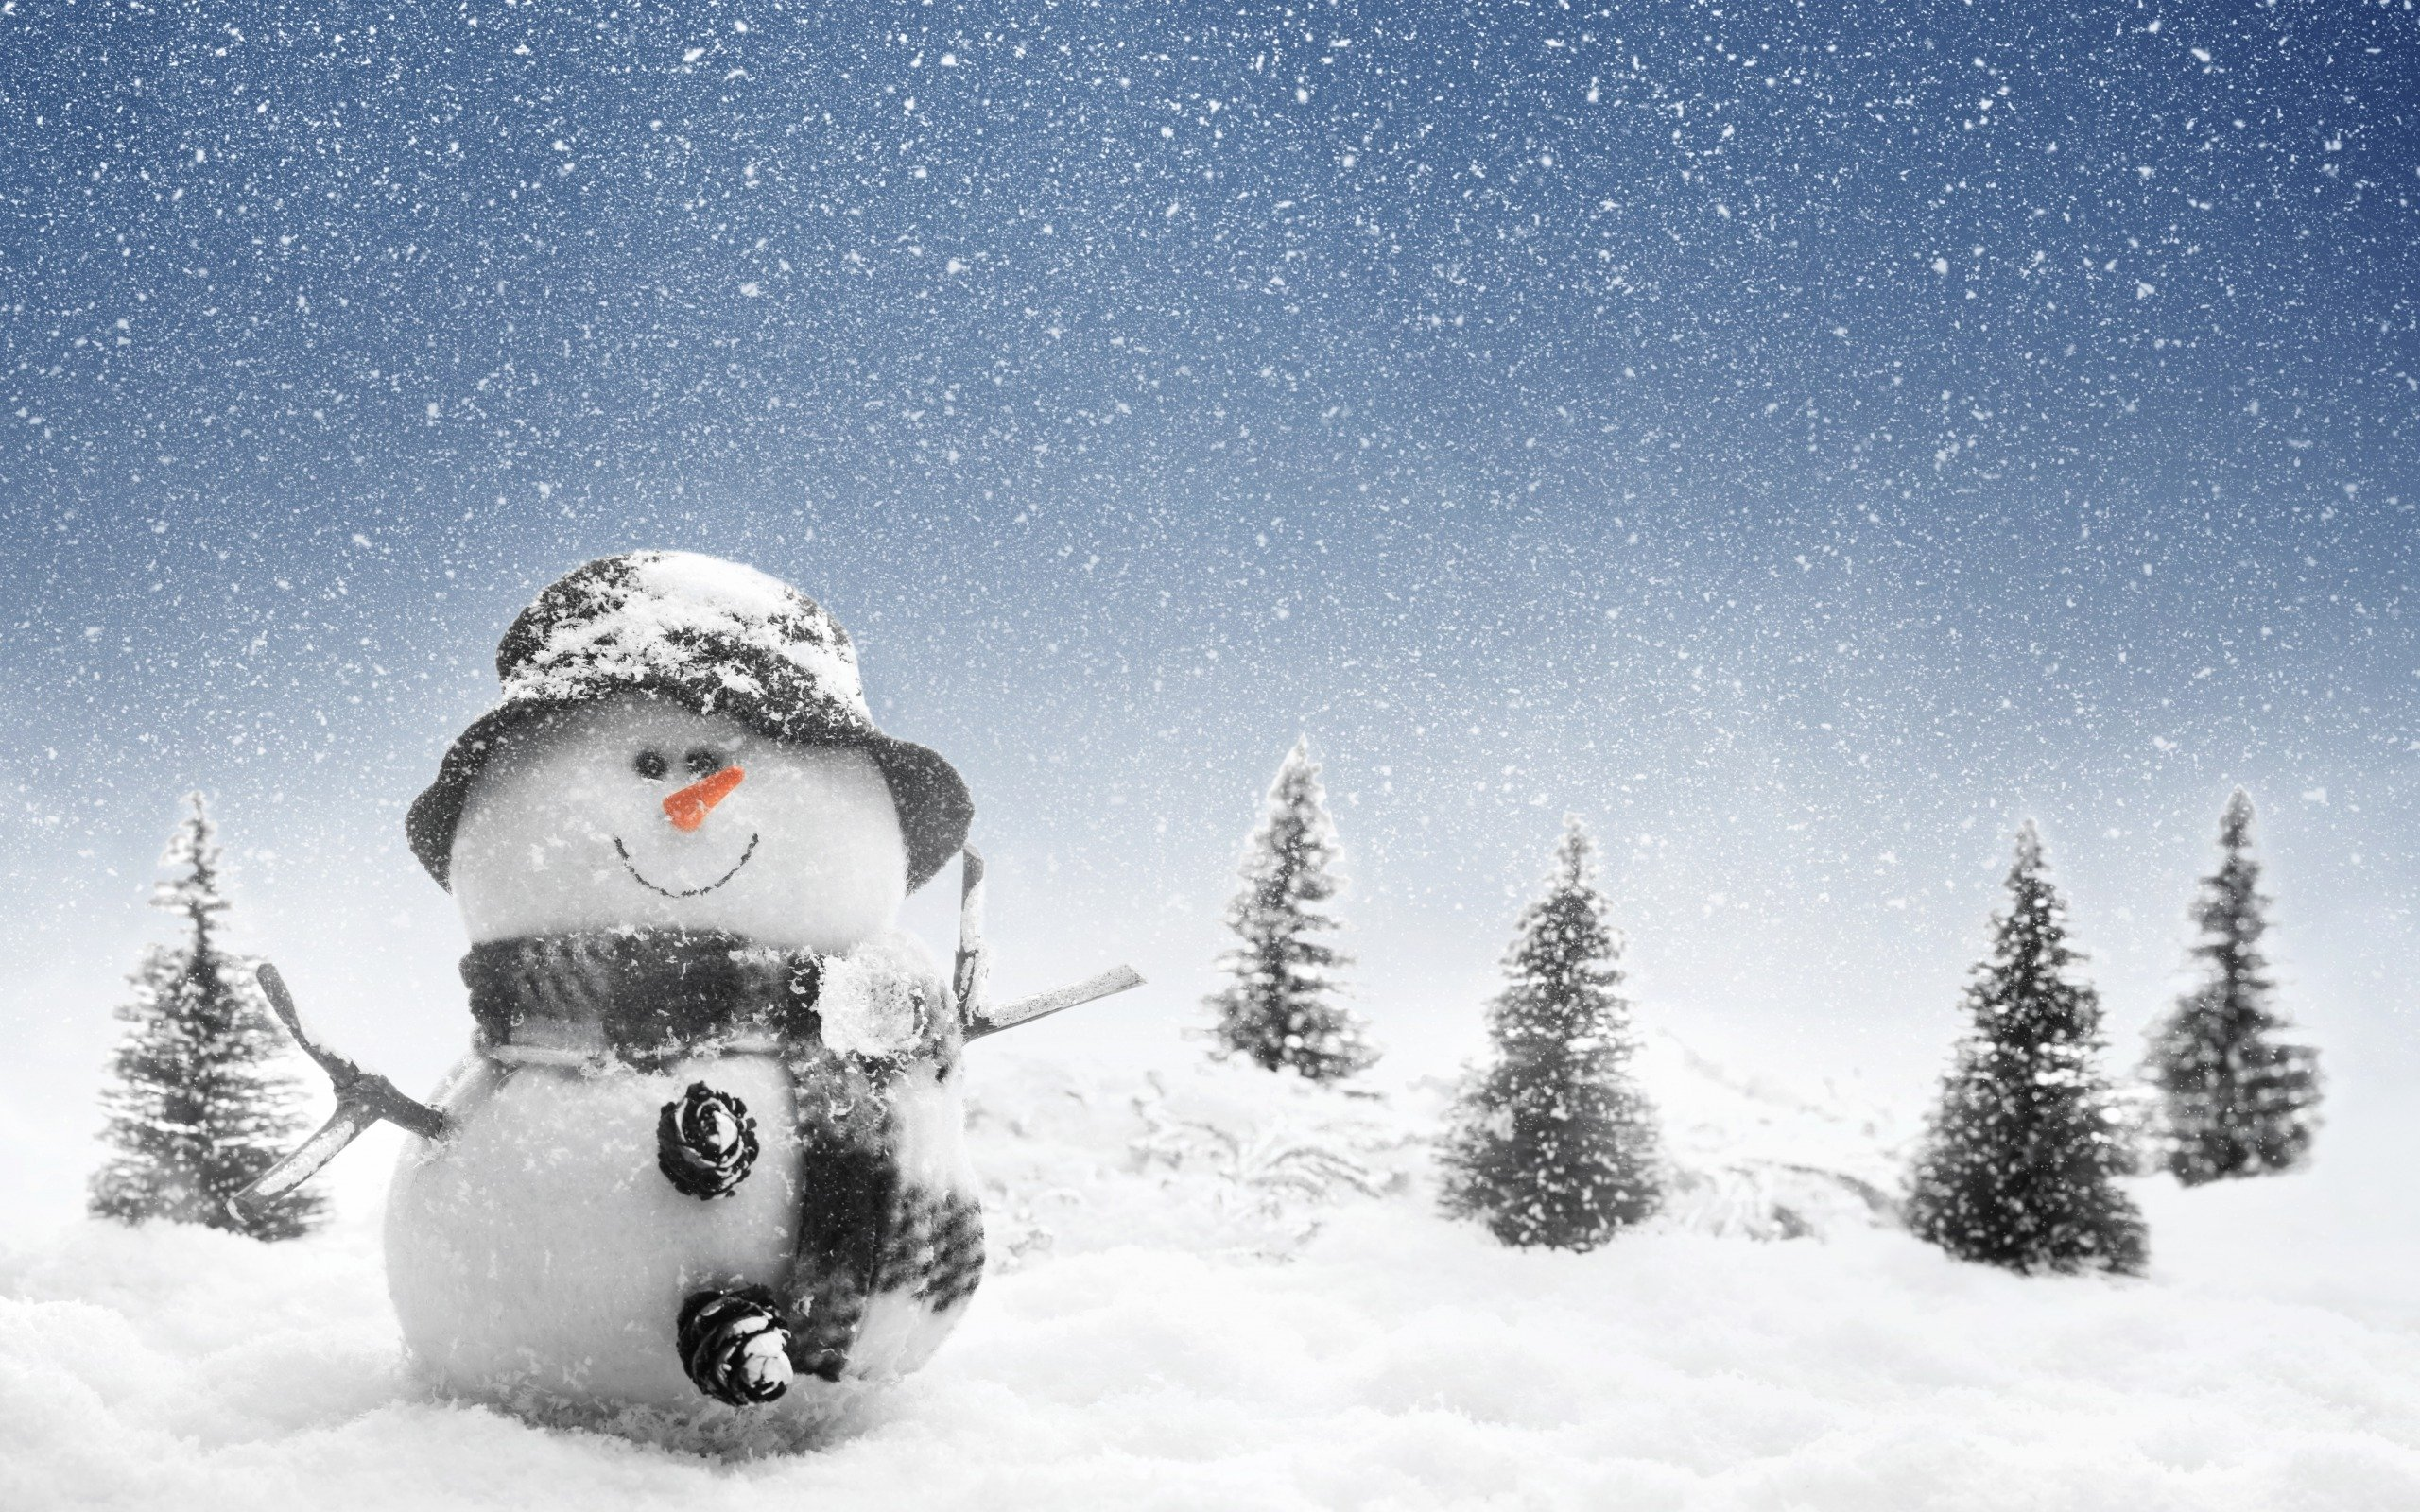 Snowman Wallpaper In Winter photos Christmas Snowman Wallpapers 2560x1600